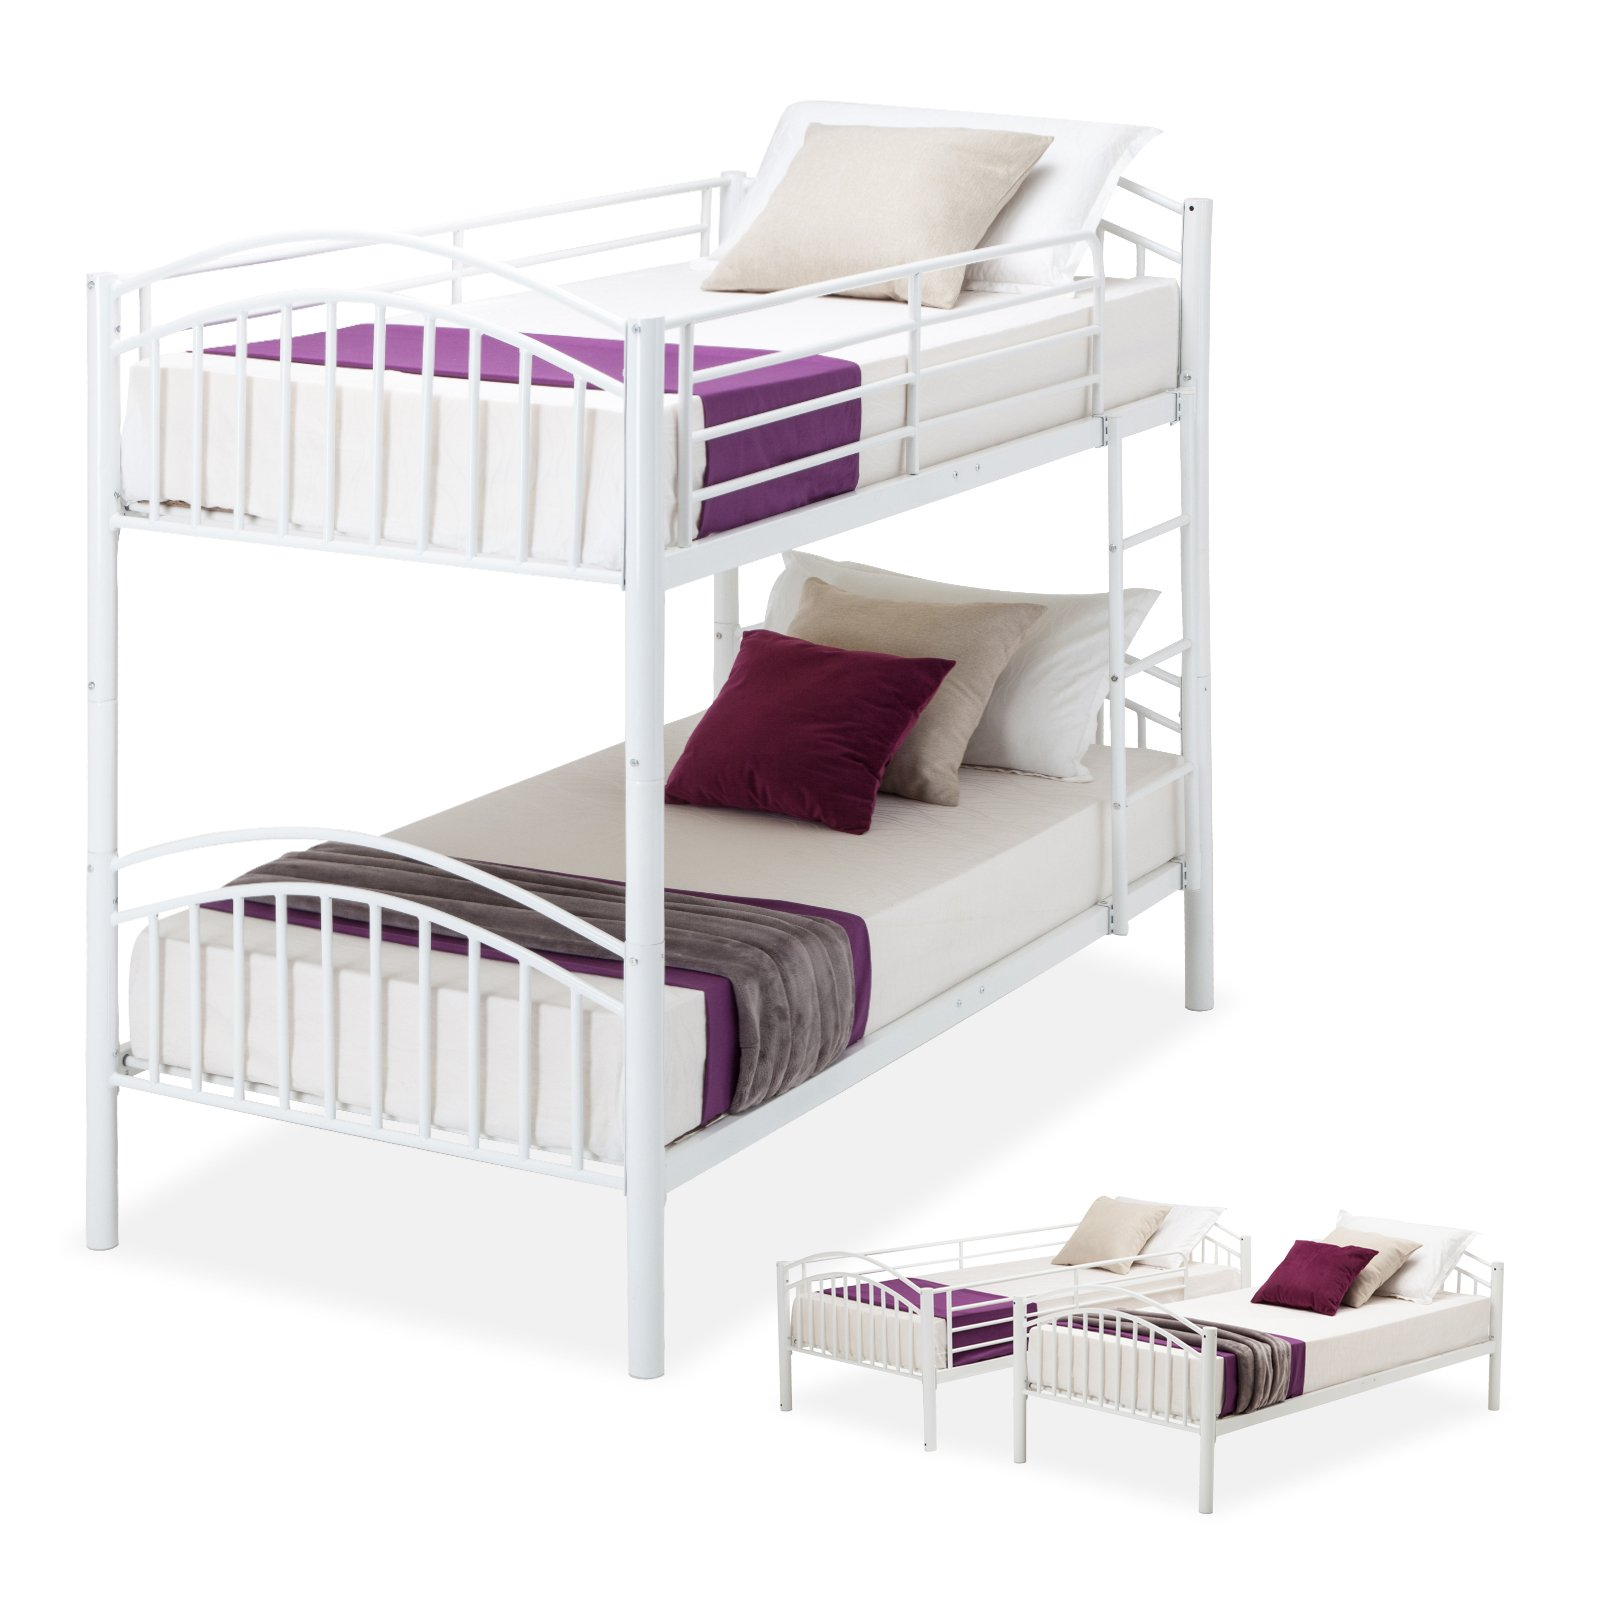 Mecor Twin Over Twin Bunk Beds Convertible Metal Bunk Bed Frame With Movable Ladder Metal Slats For Kids Adult Children White Buy Online In United Arab Emirates At Desertcart Ae Productid 48434283